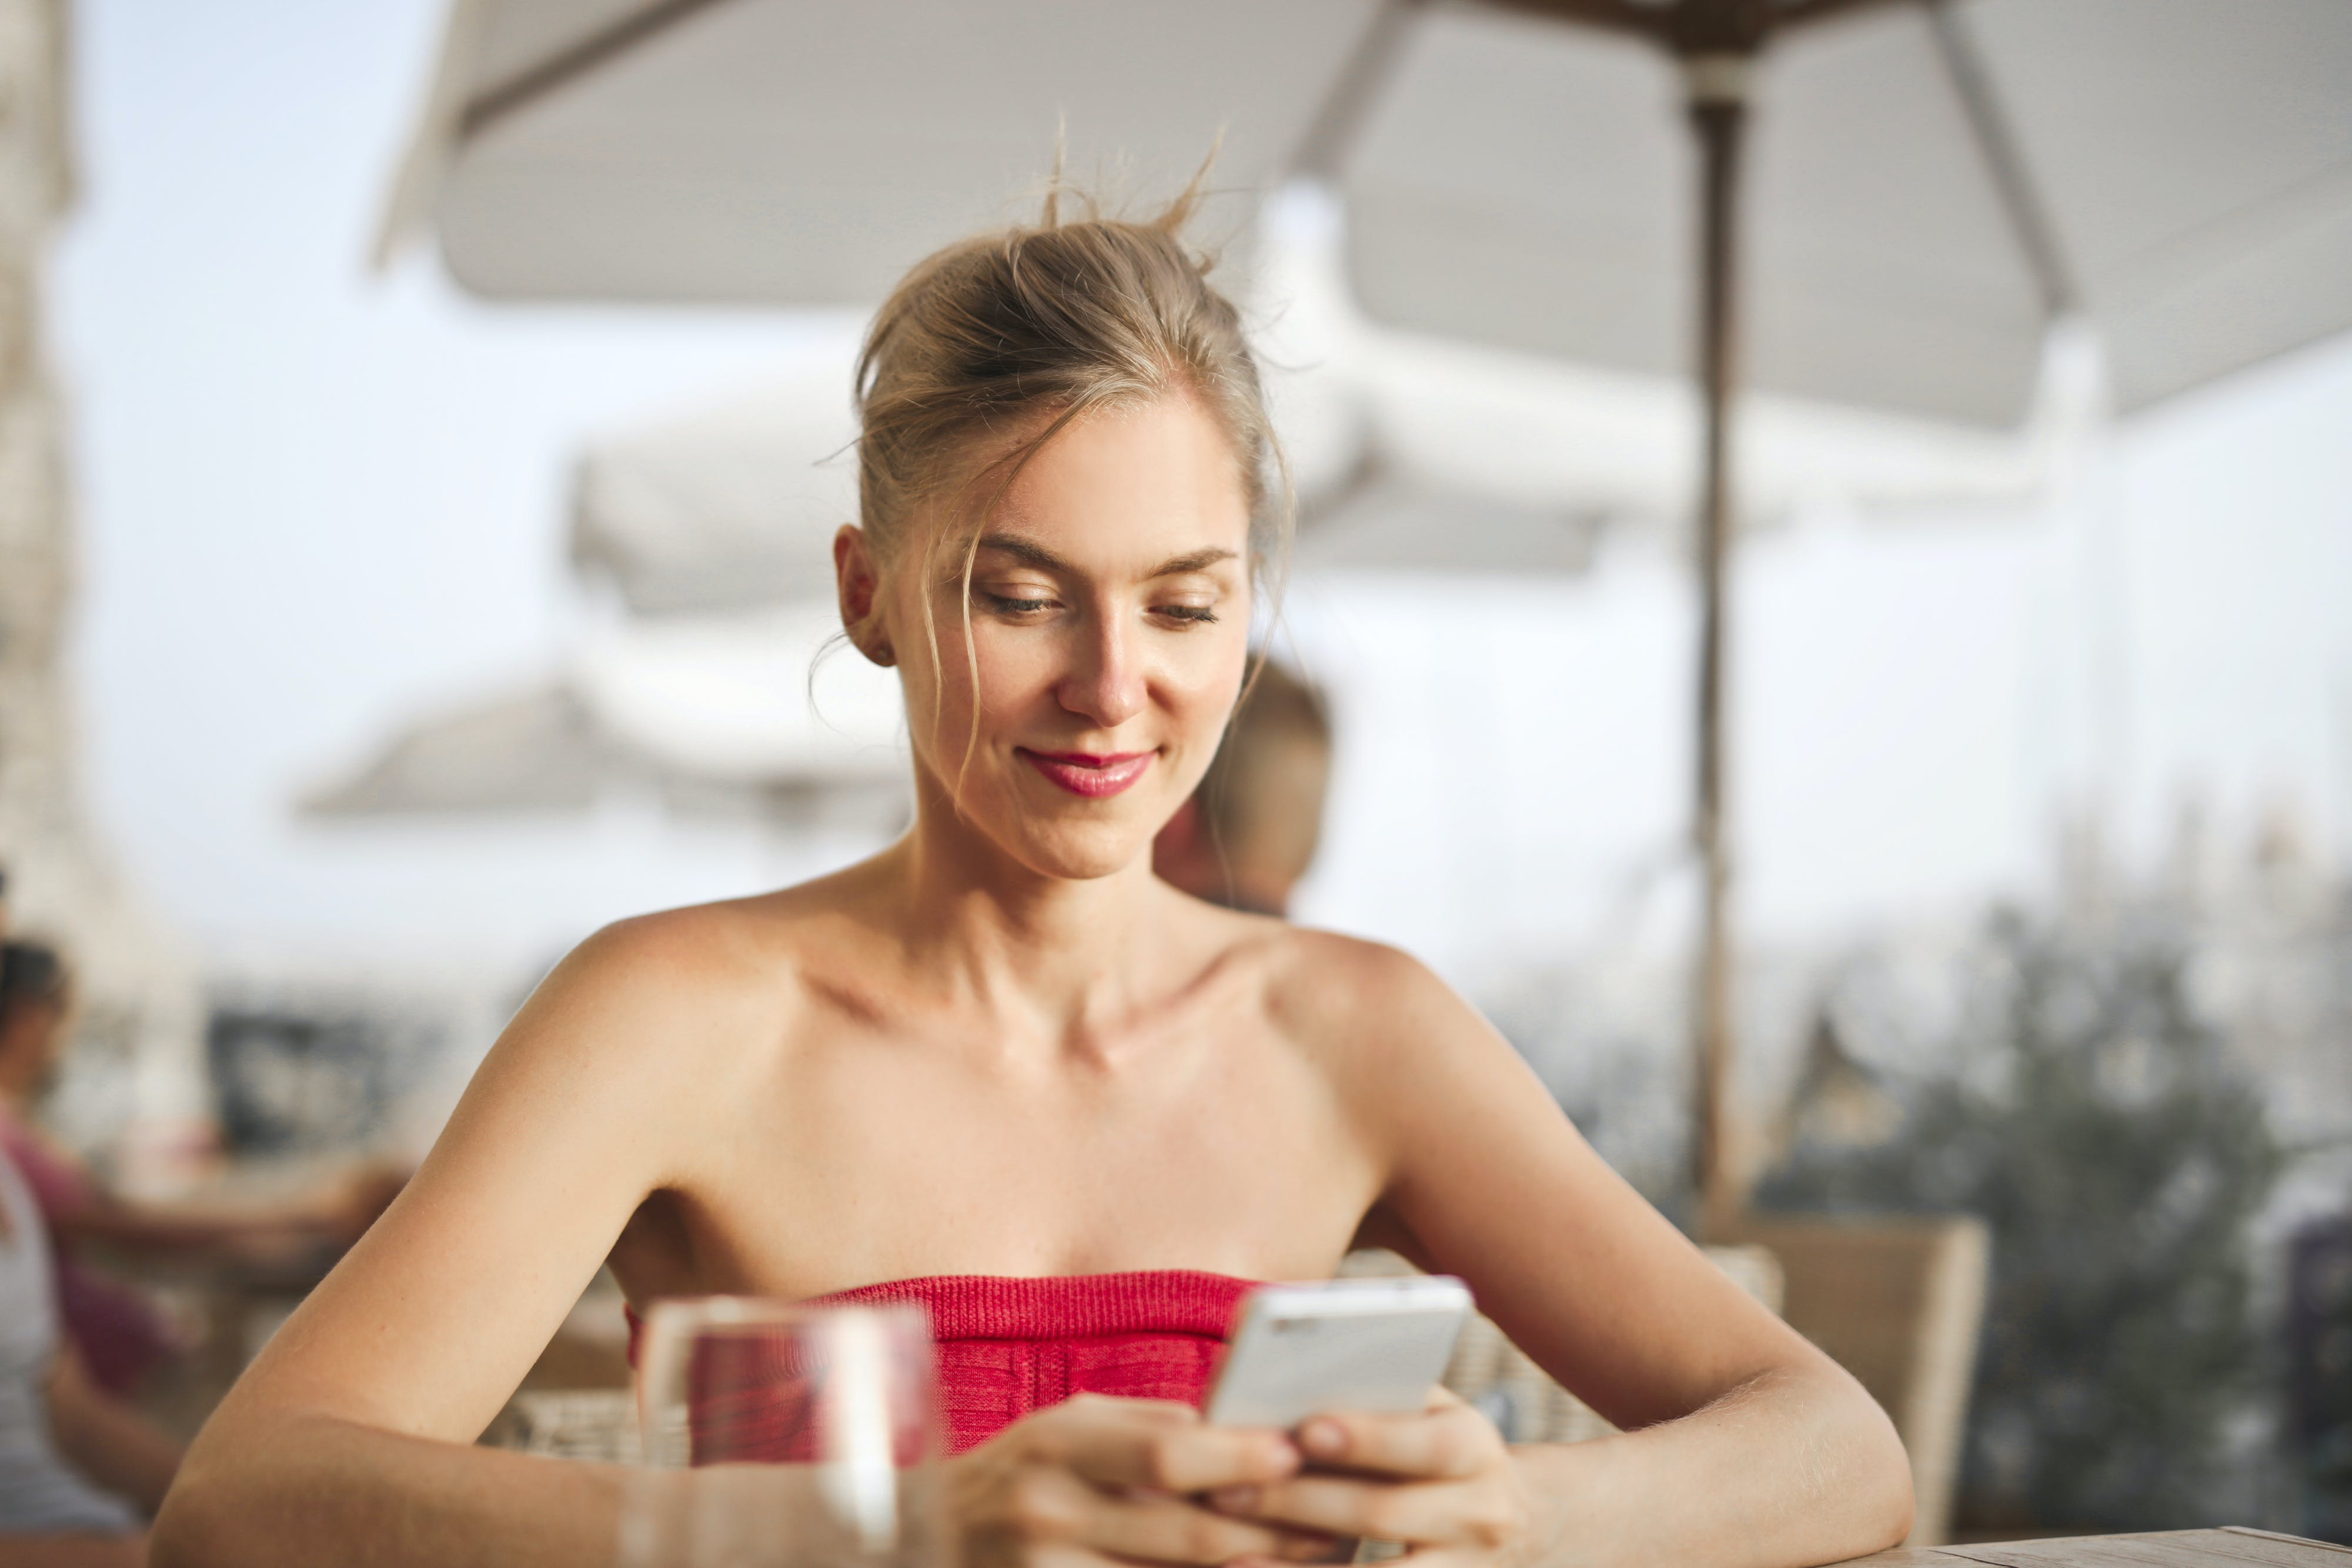 Woman Sitting on Chair While Holding Smartphone